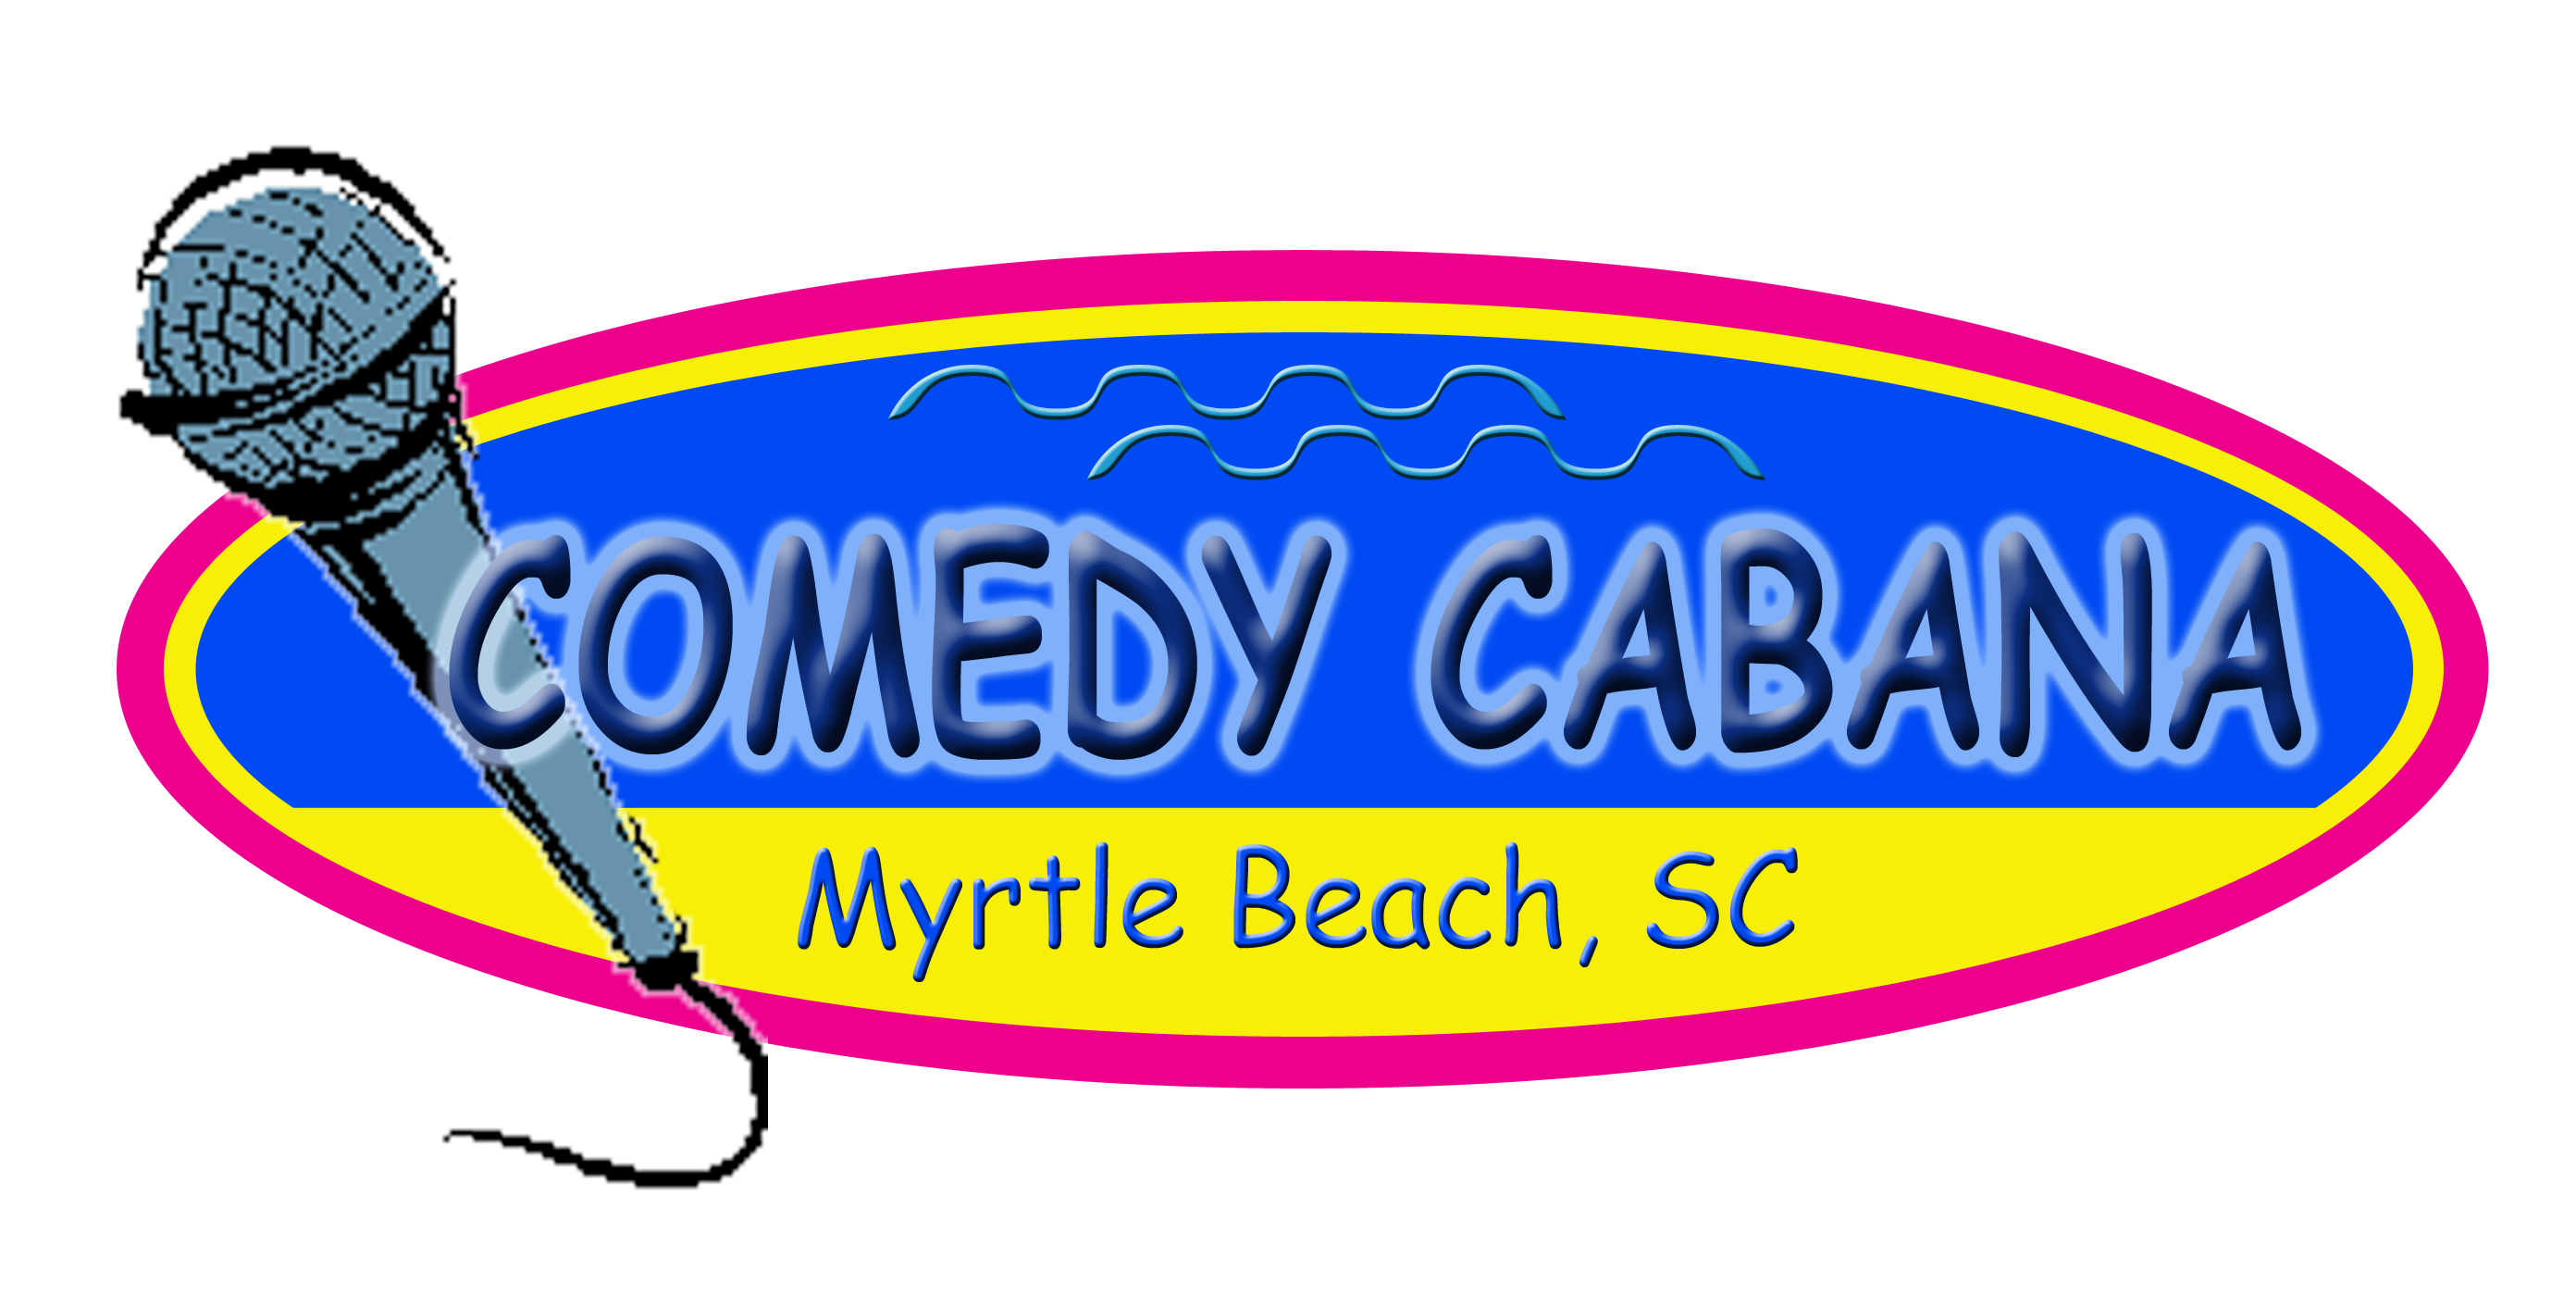 Comedy cabana myrtle beach coupon